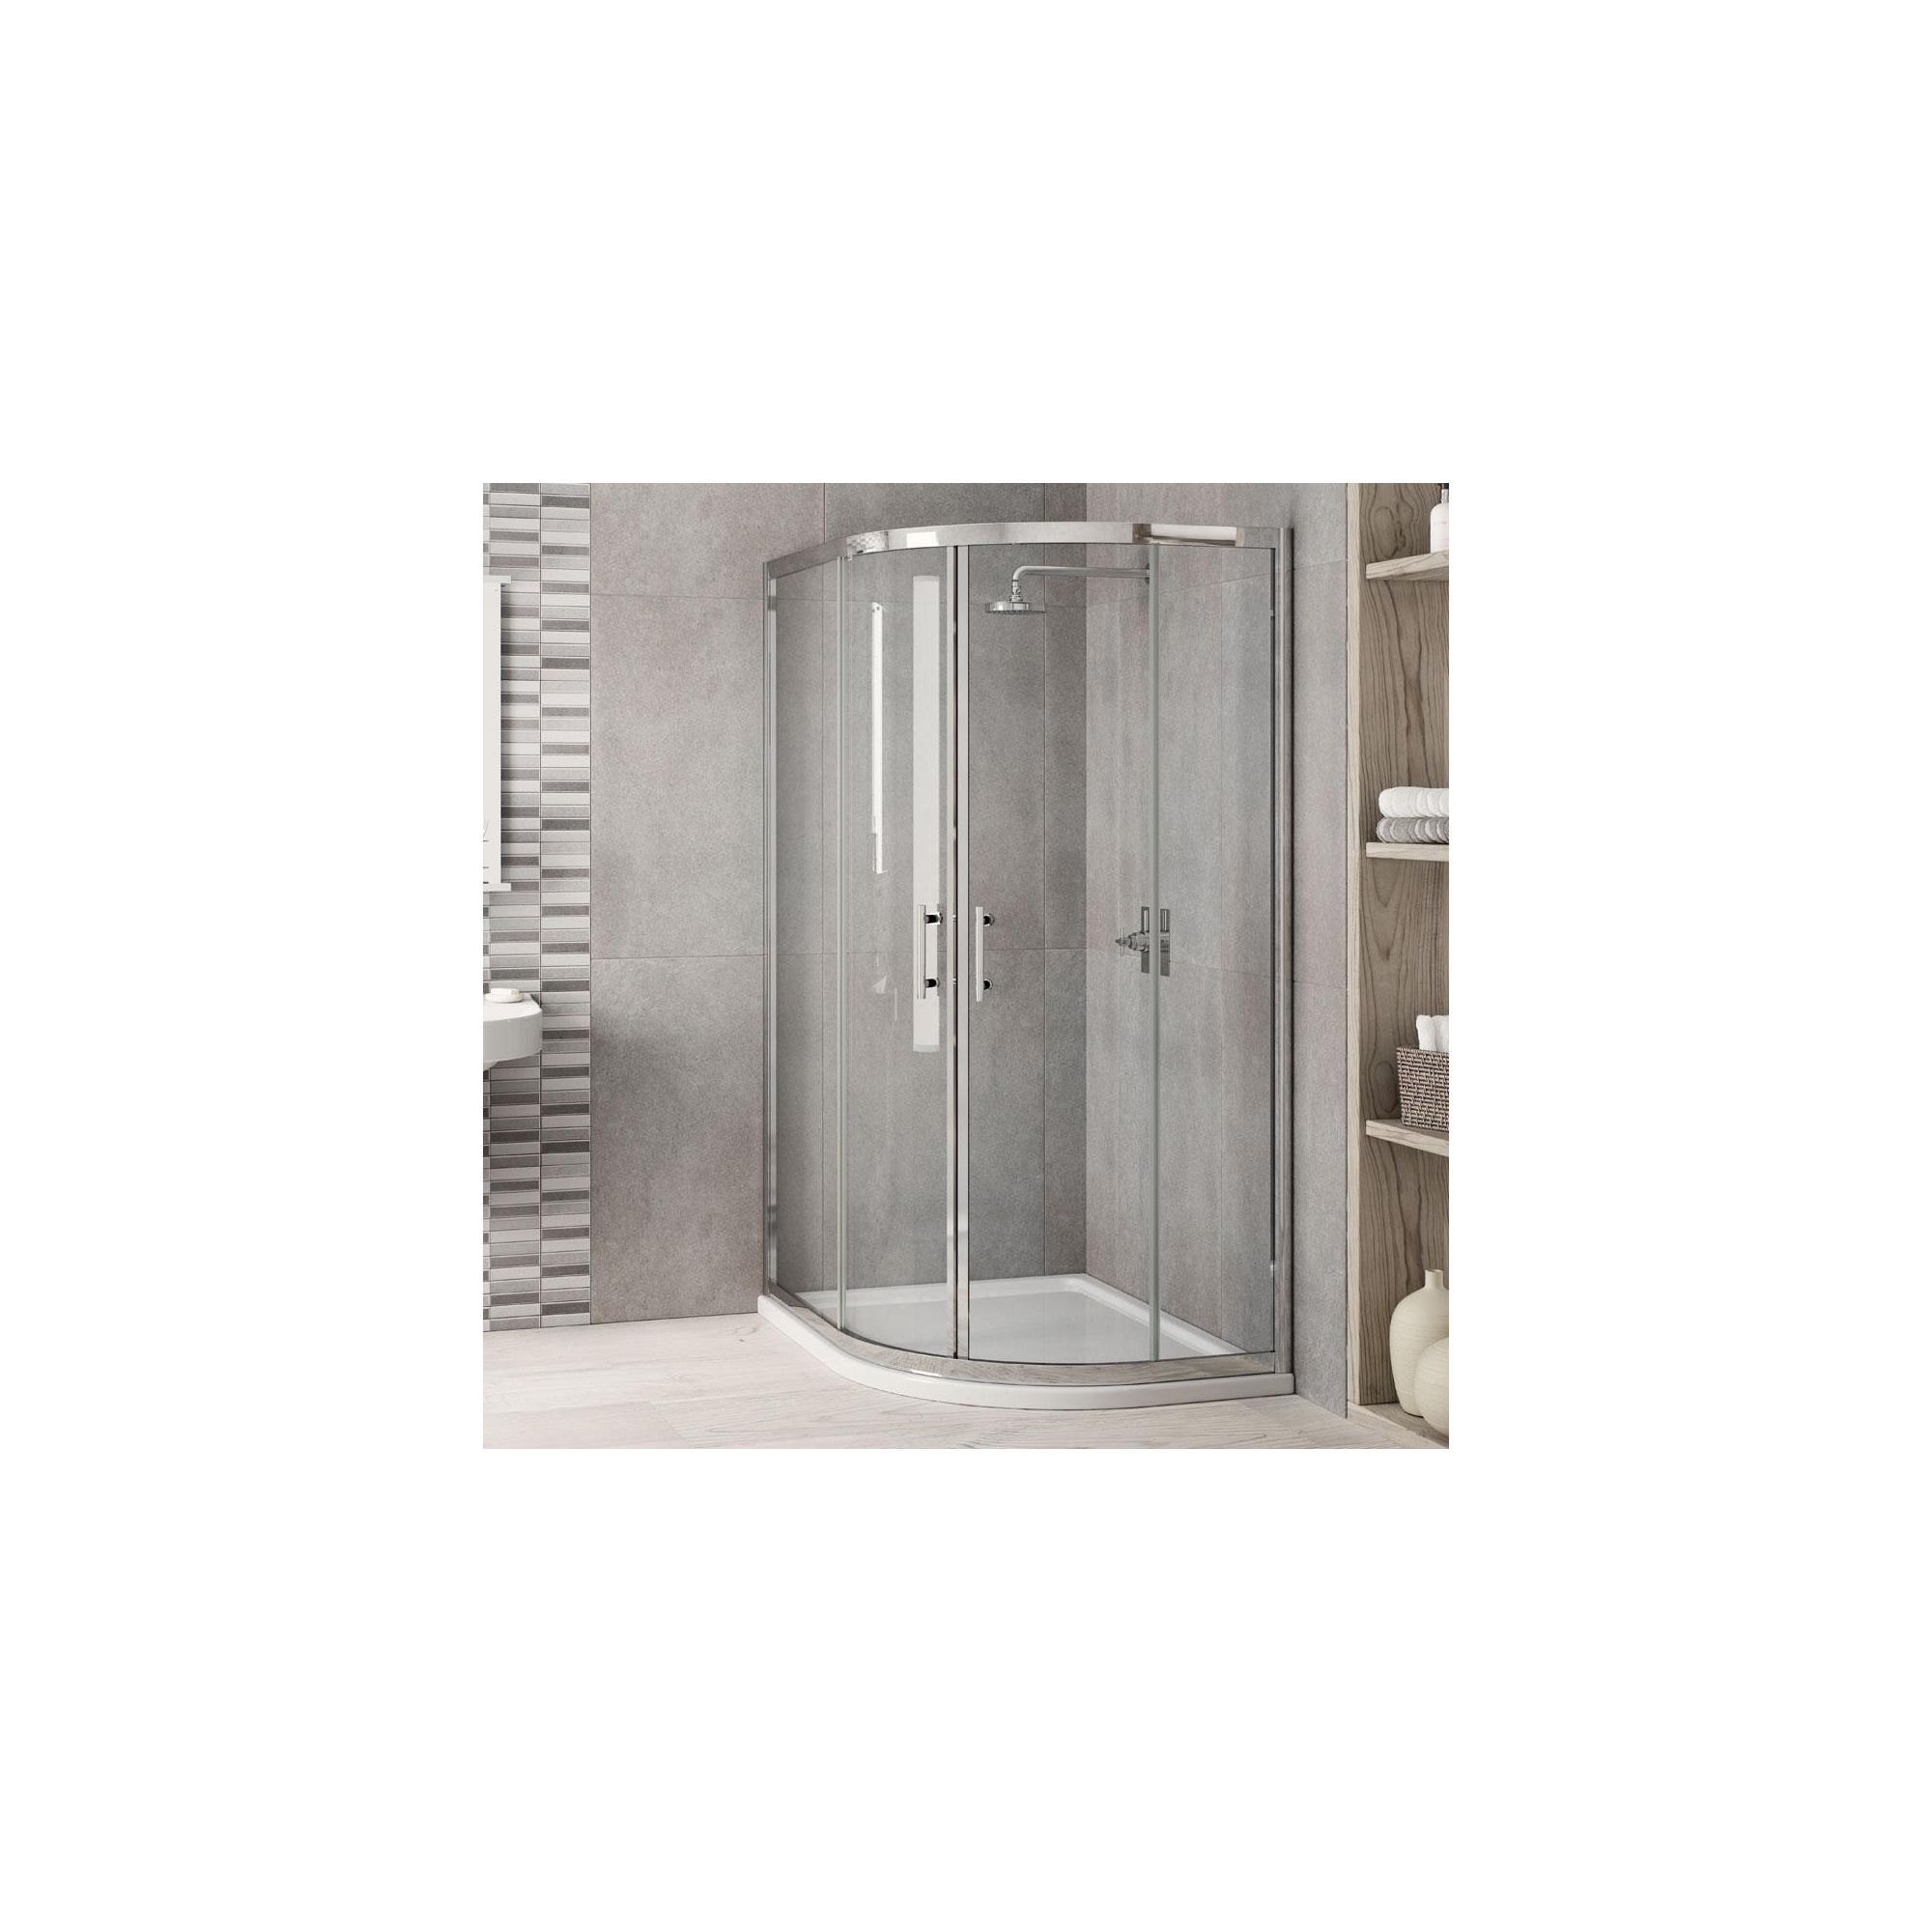 Elemis Inspire Offset Quadrant Shower Enclosure, 1200mm x 800mm, 6mm Glass, Low Profile Tray, Left Handed at Tesco Direct